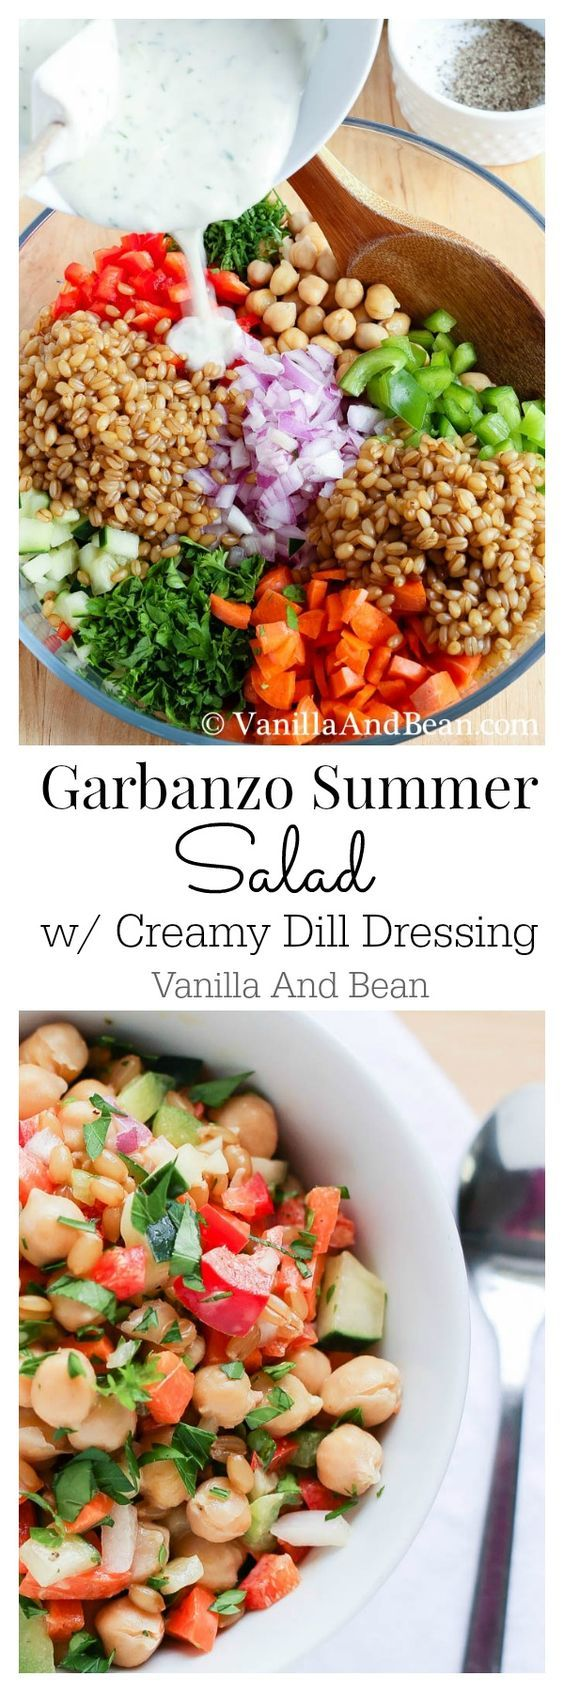 Garbanzo Summer Salad with Creamy Dill Dressing                                                                                                                                                                                 Plus